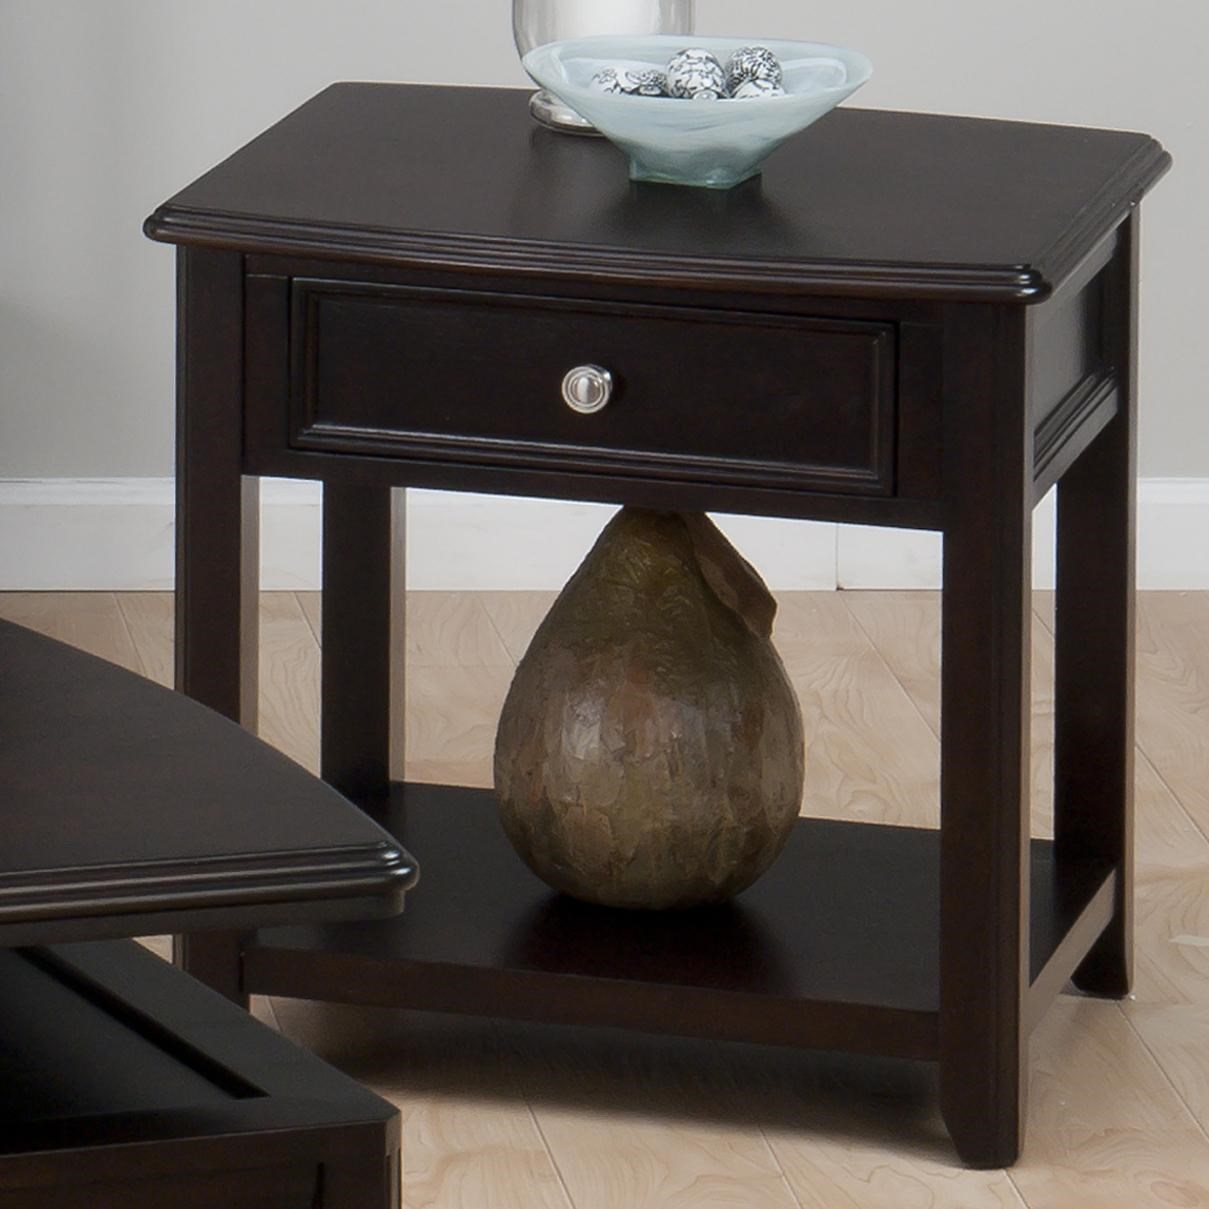 Jofran Corranado Espresso Casual Espresso End Table With Drawer U0026 Shelf